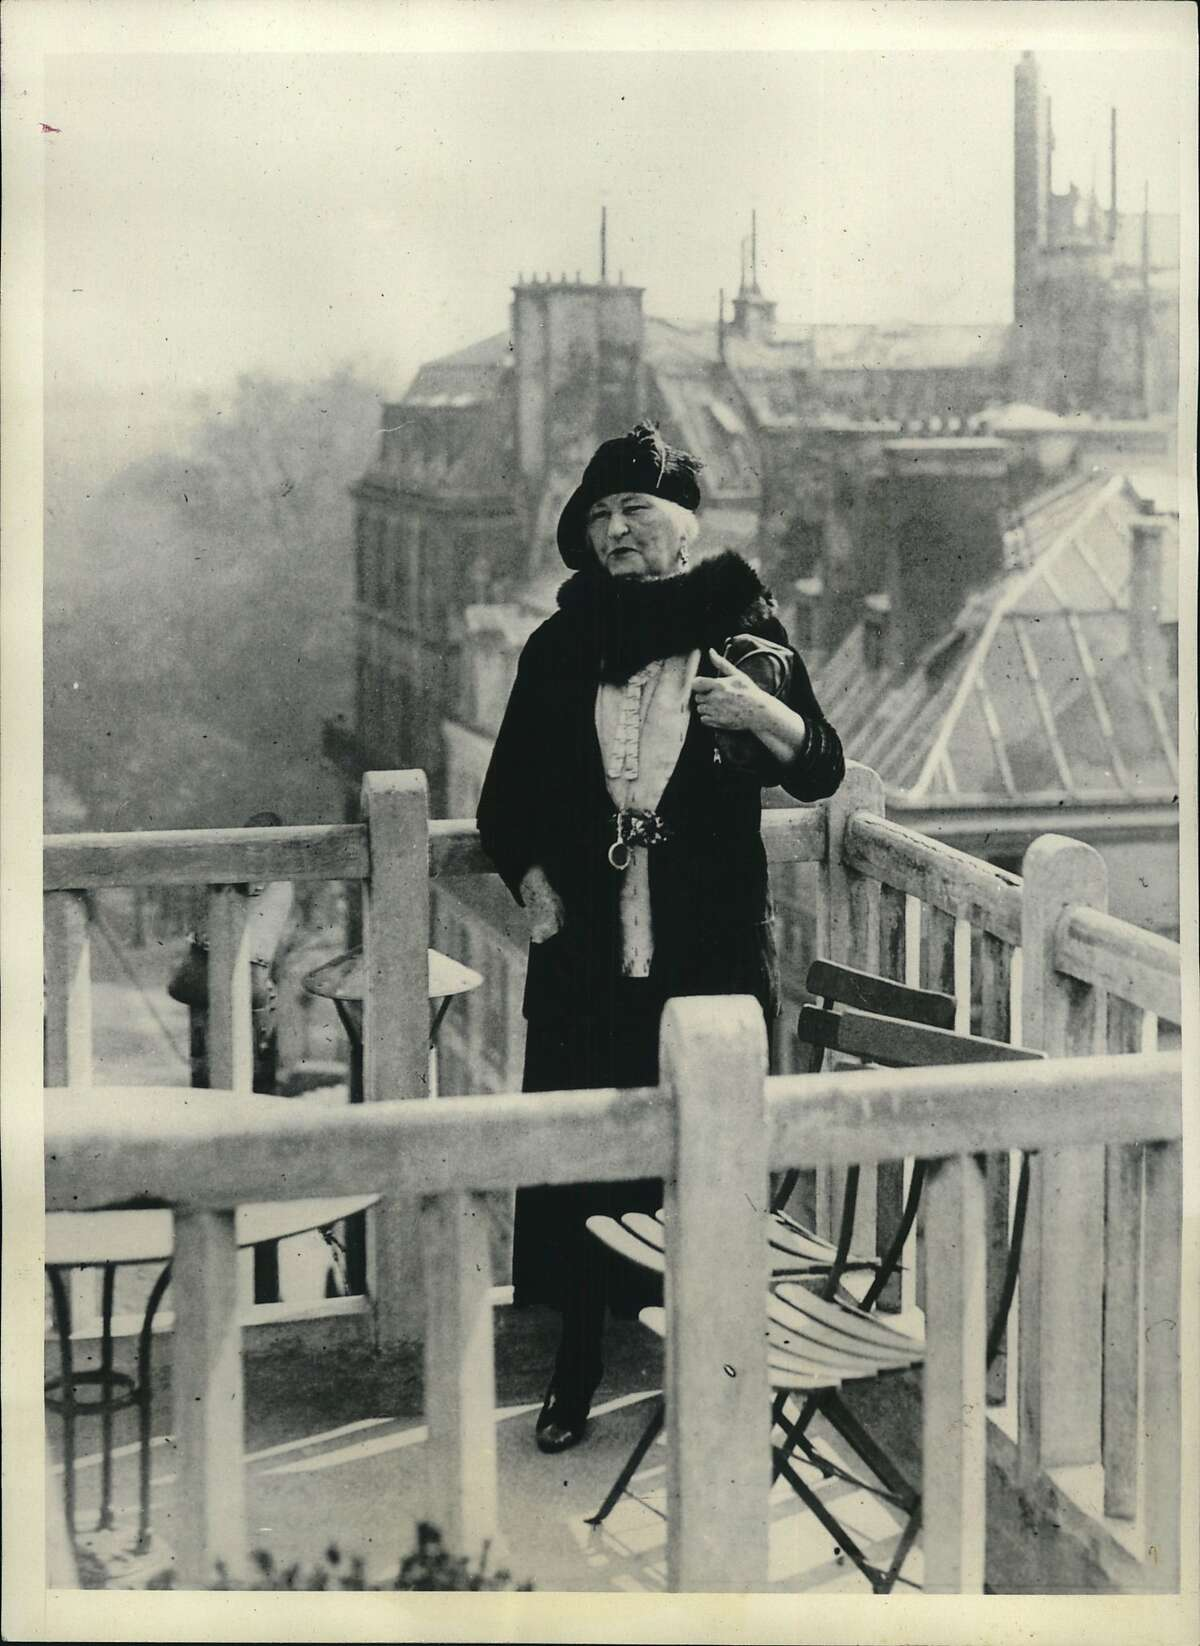 Black, Winifred. Paris, France. Mrs. Winifred Black Bonfils, well-known as the writer for Hearst Publications under the name of Winifred Black, enjoys a spring-time Glimpse of Paris on her way to Geneva where she will attend the drug conference.